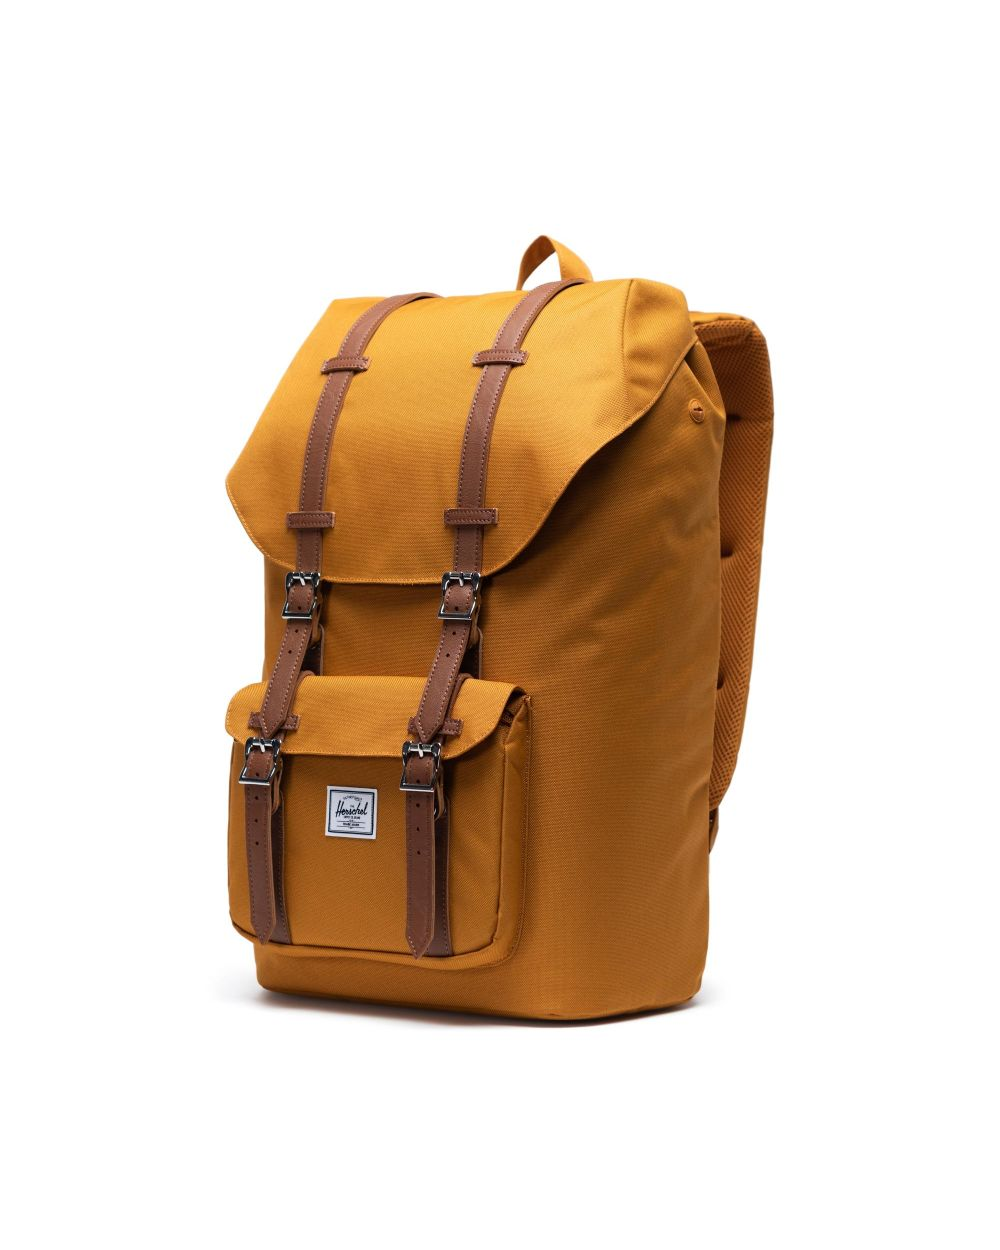 LITTLE AMERICA BACKPACK - BUCKTHORN BROWN